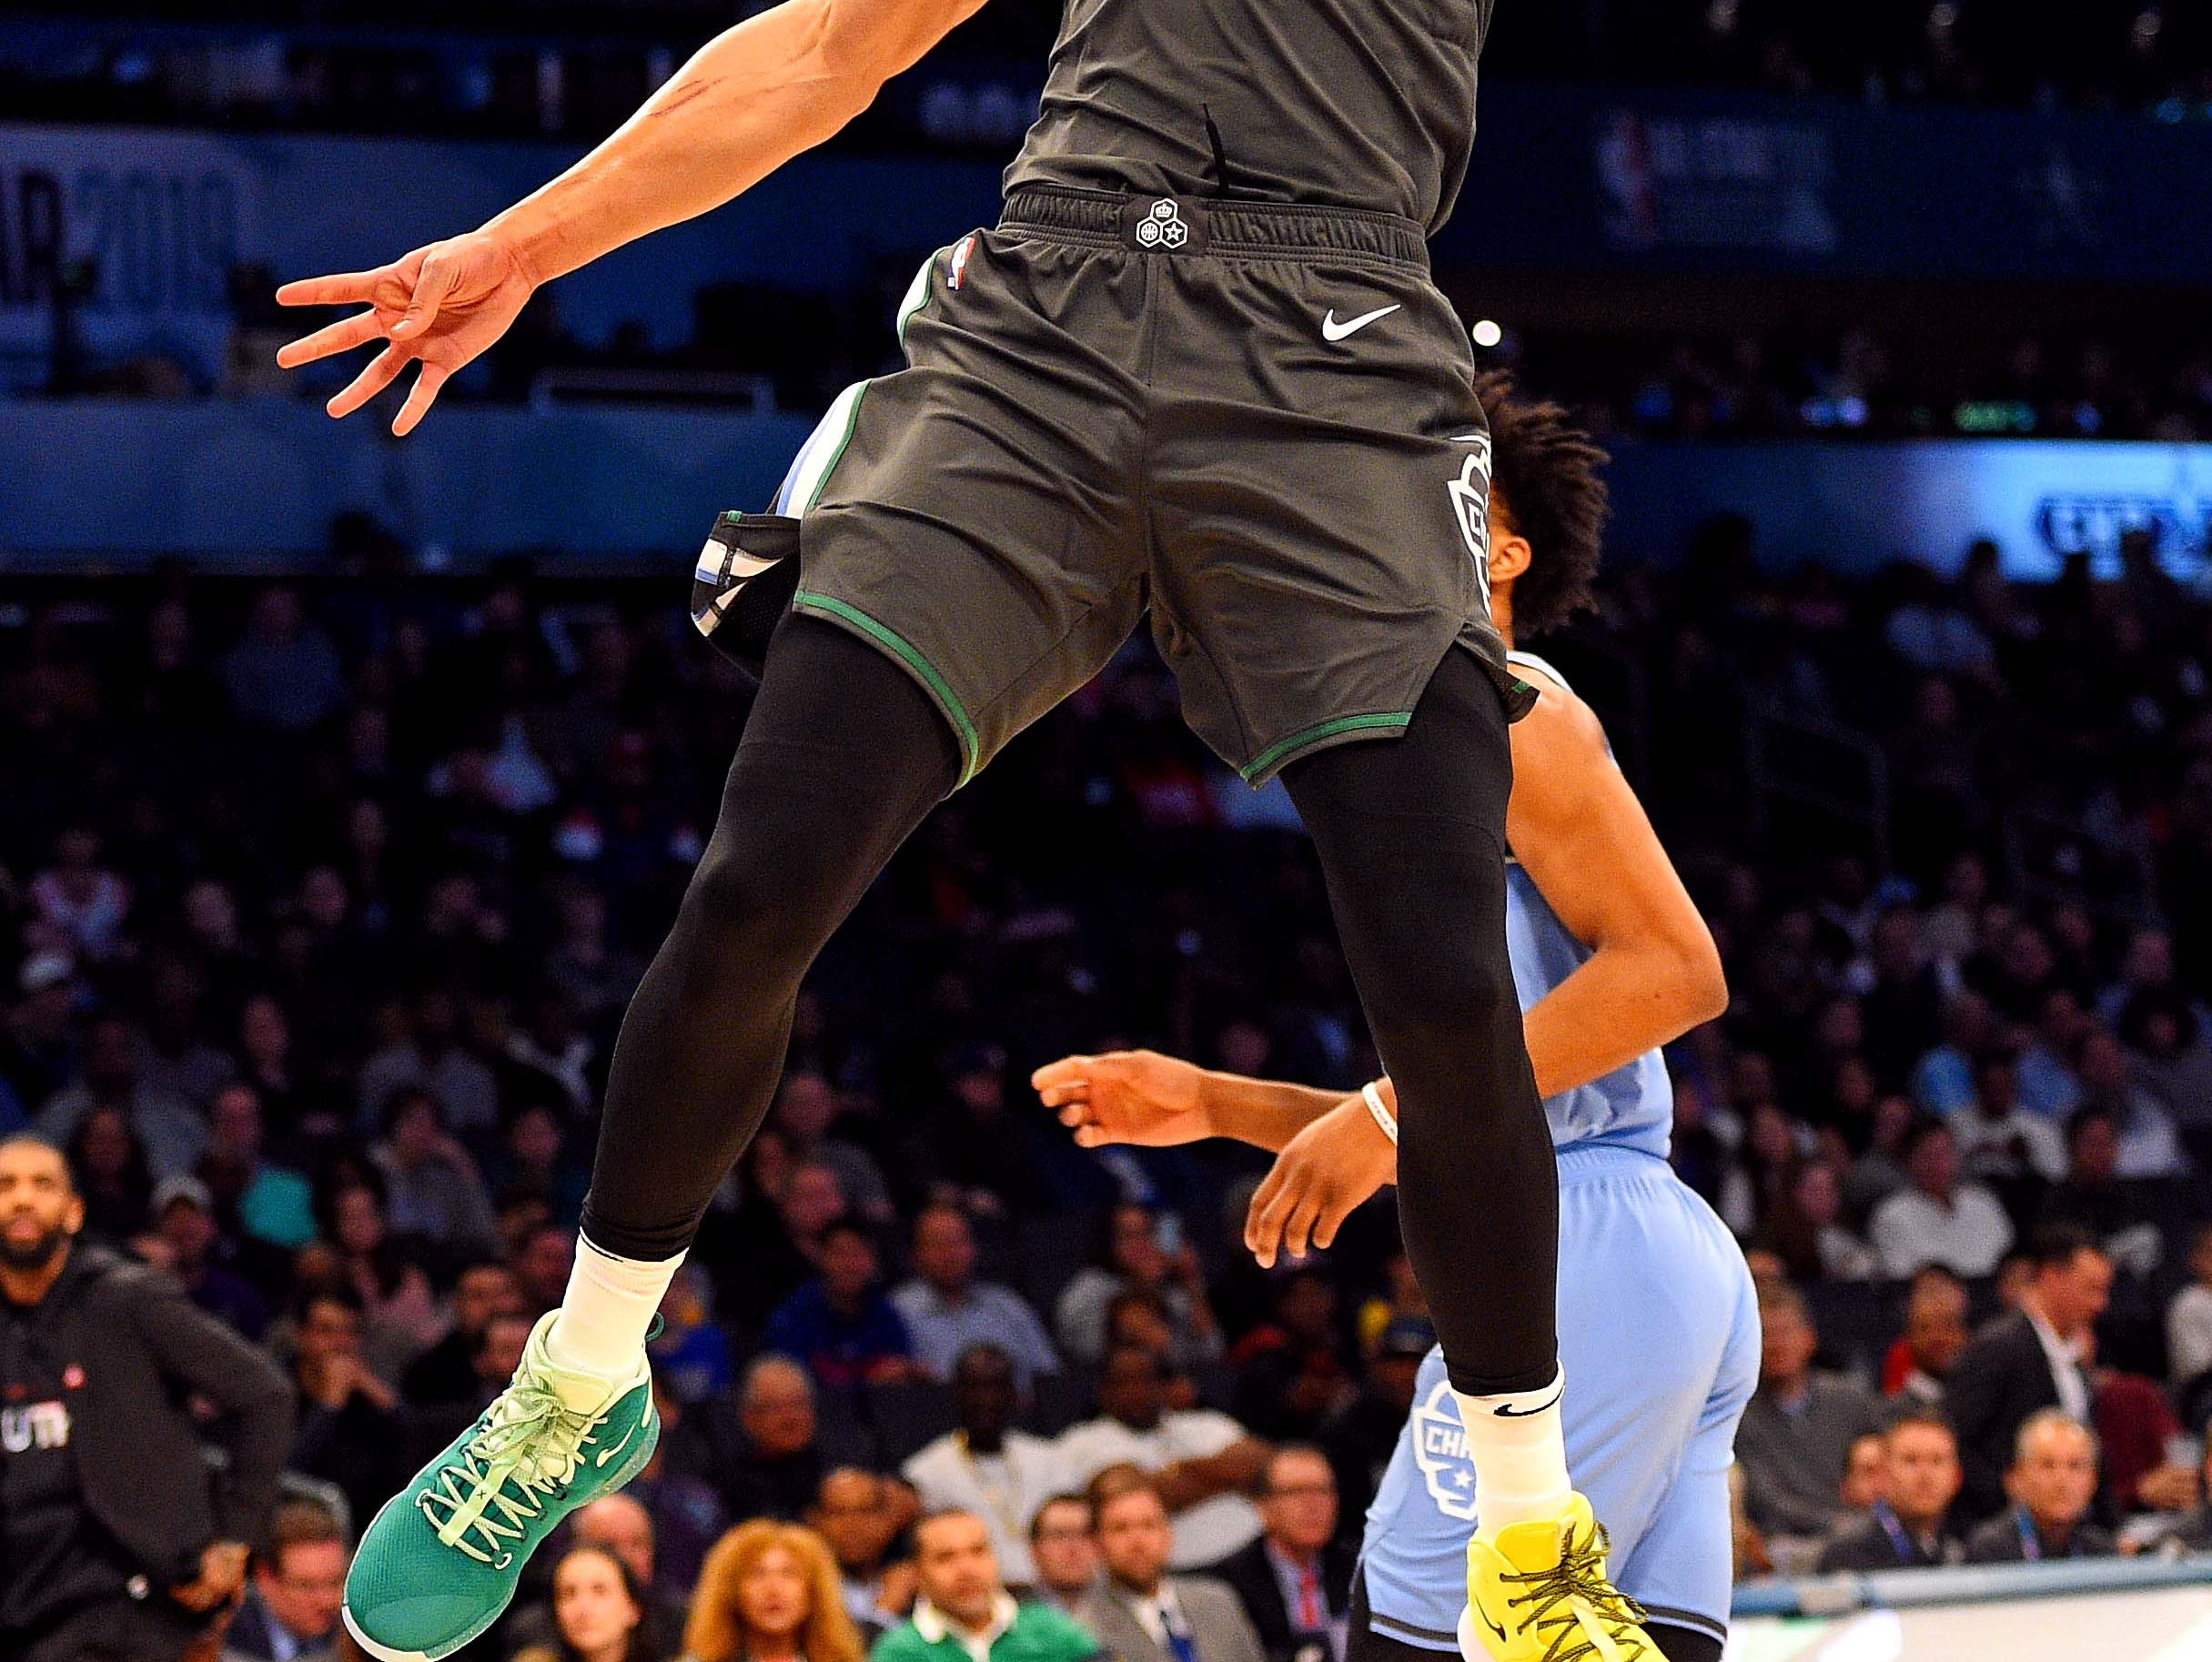 Ben Simmons dunks during the All-Star Rising Stars game.